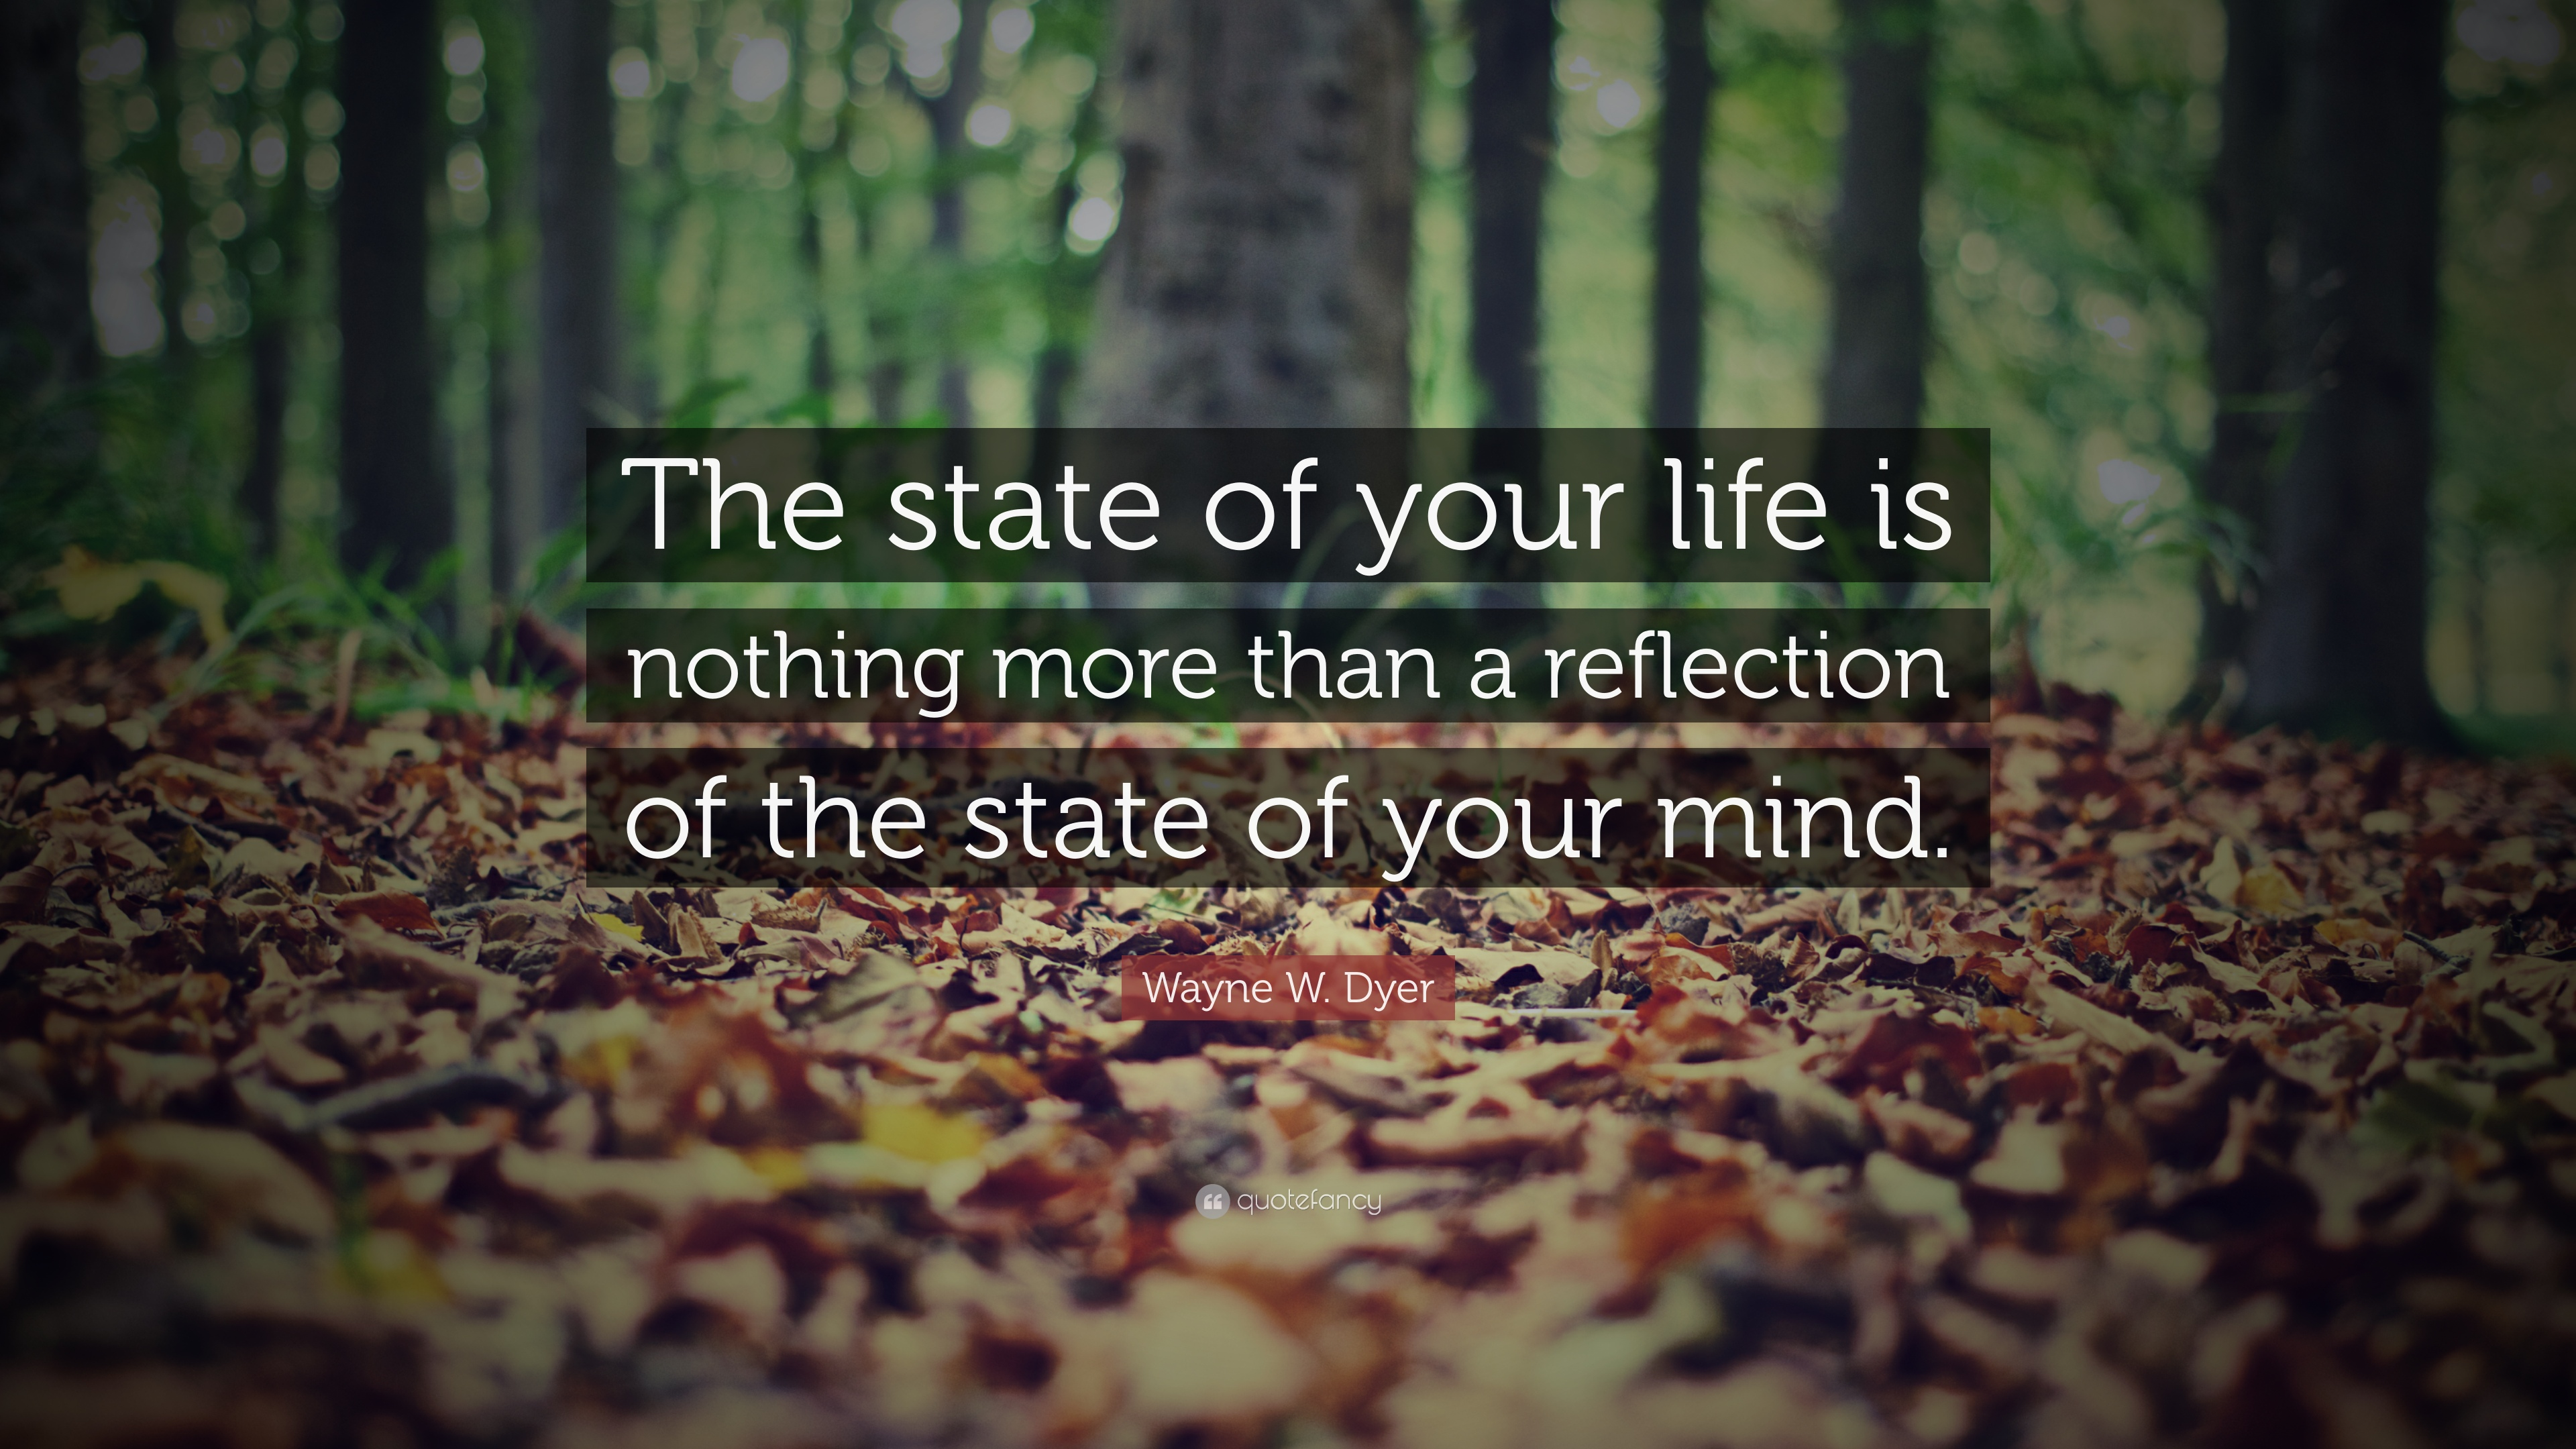 Wayne W. Dyer Quote: U201cThe State Of Your Life Is Nothing More Than